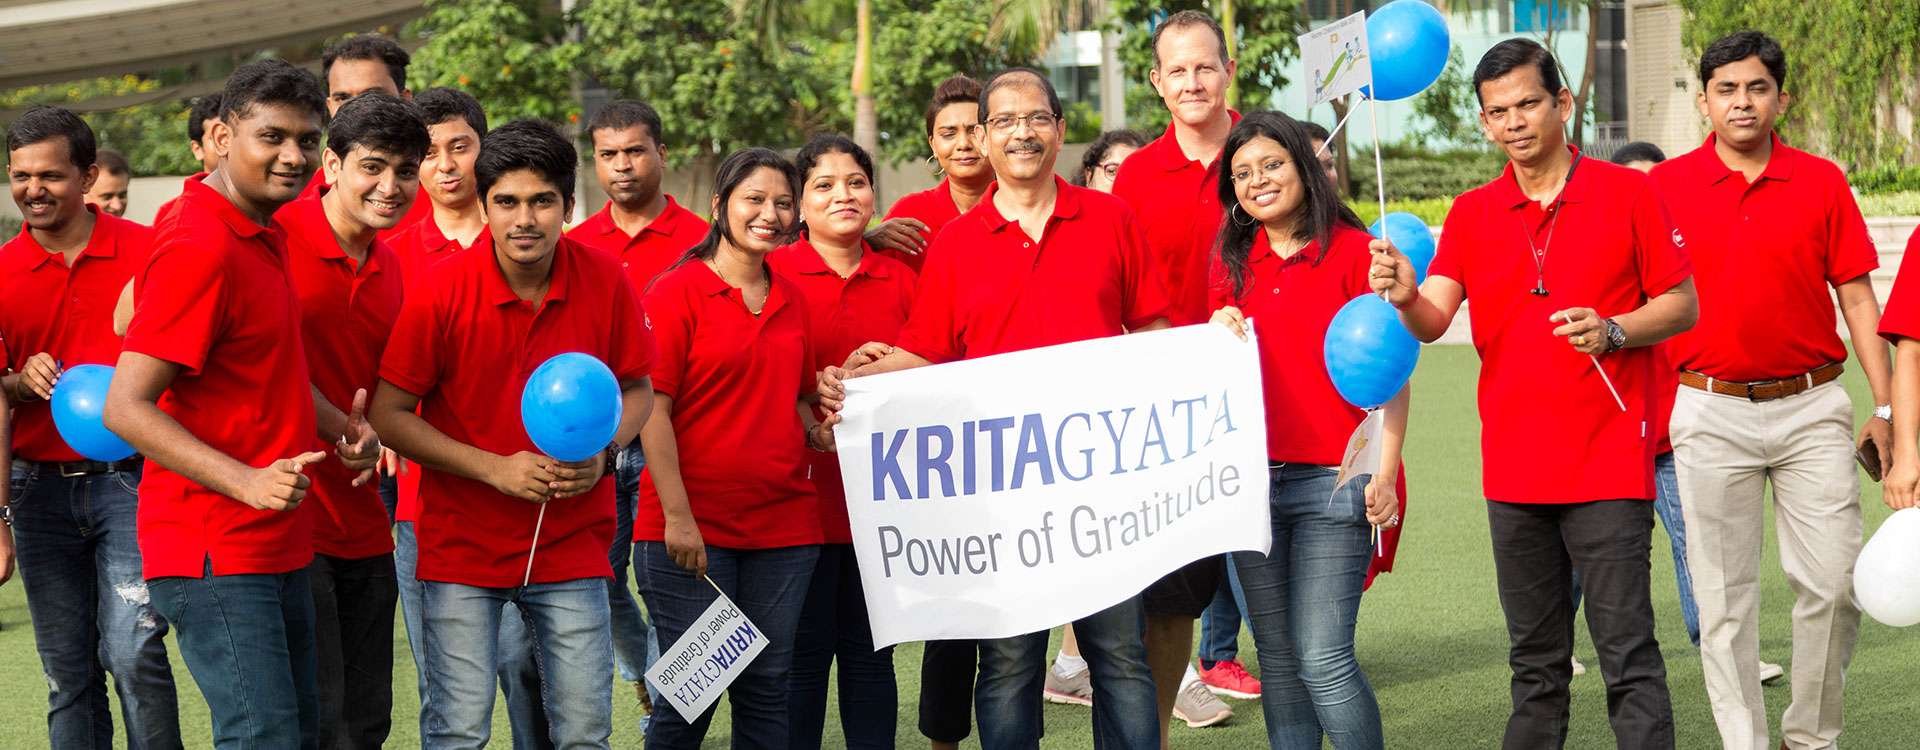 Kritagyata – Transforming the power of positivity